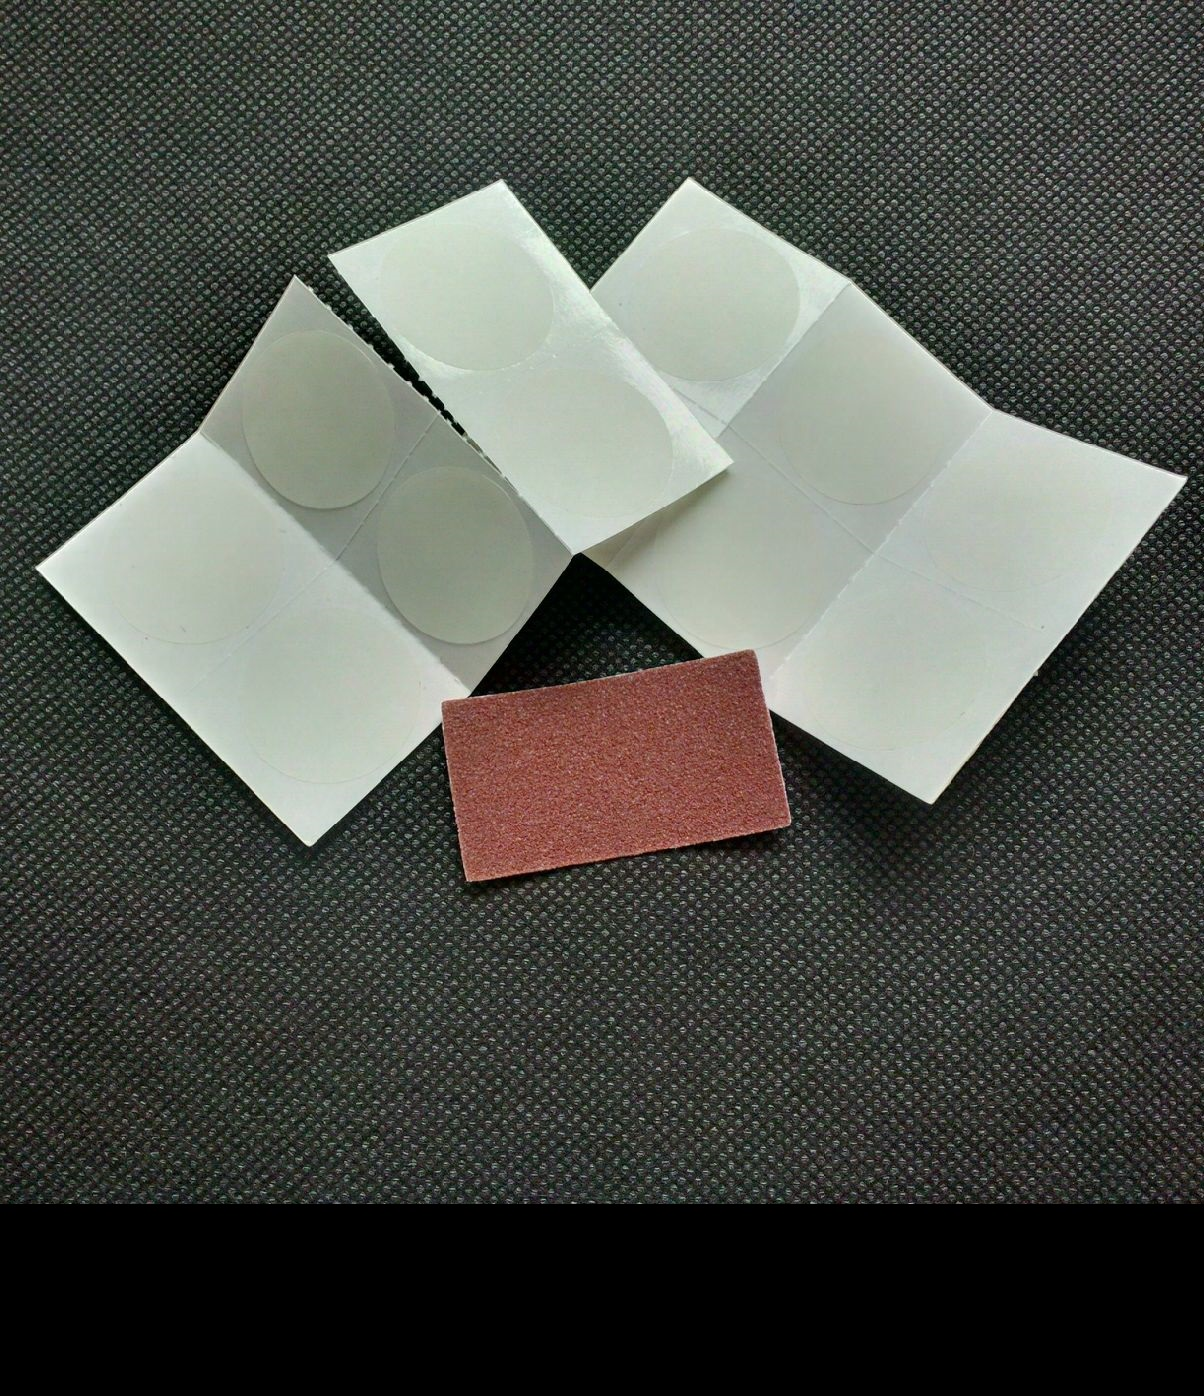 Puncture Repair Kits - 12 perforated patches with Sandpaper strip